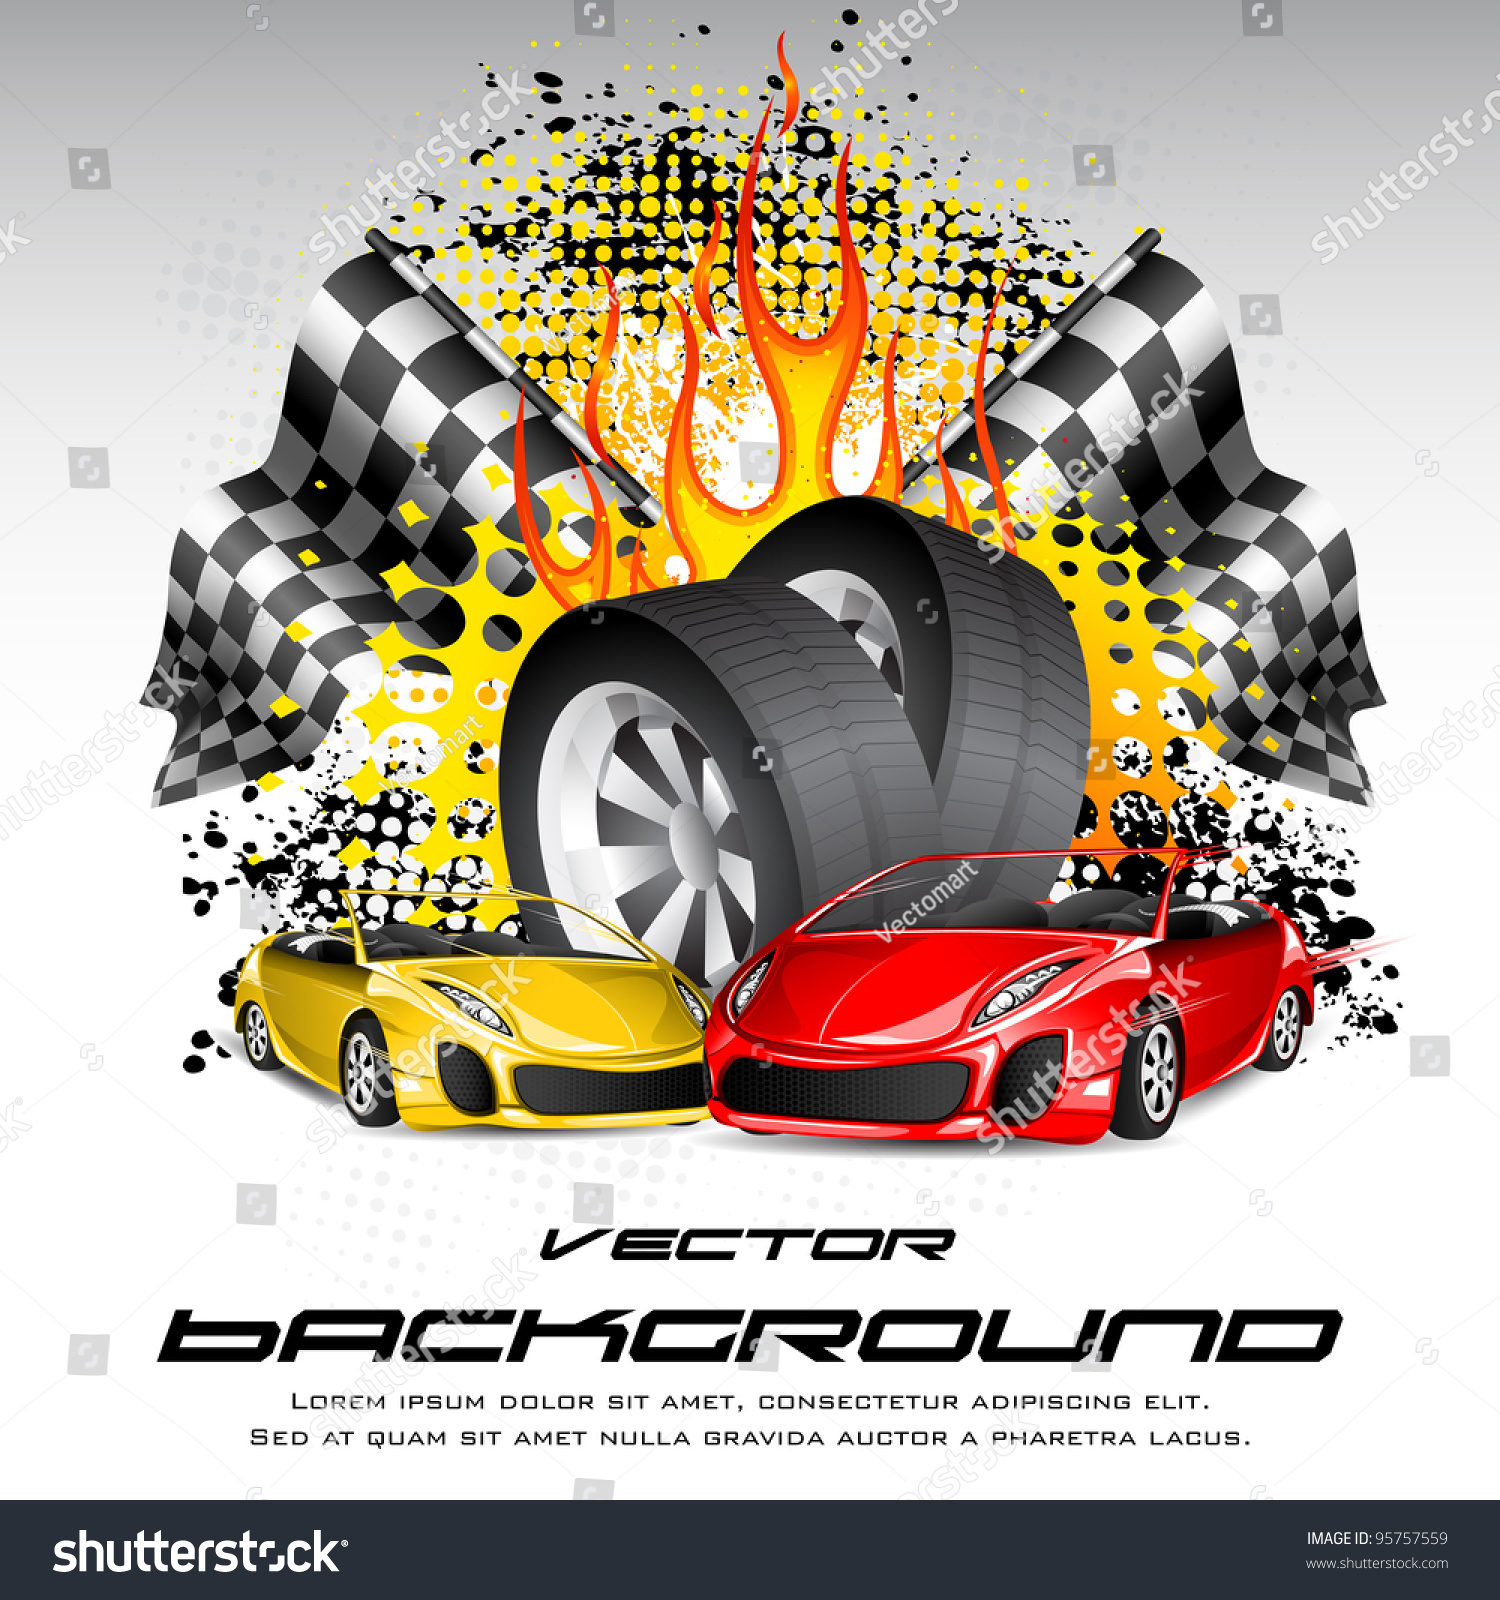 Design car flags - Illustration Of Tyre With Car And Race Flag On Fiery Background